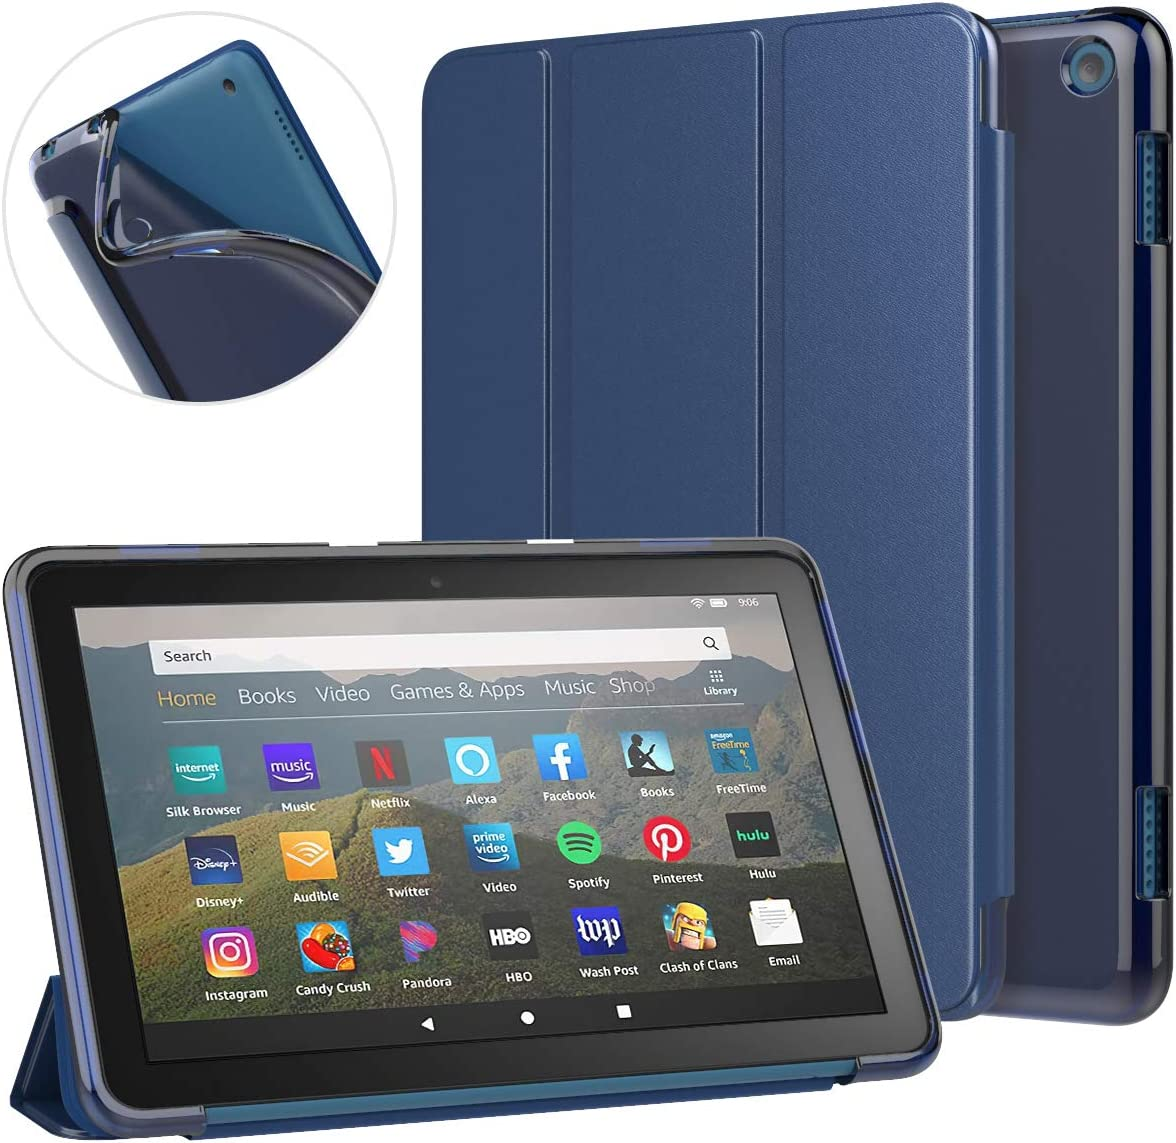 MoKo Case Fit All-New Kindle Fire HD 8 Tablet and Fire HD 8 Plus Tablet (10th Generation, 2020 Release) Case, Soft TPU Translucent Frosted Back Cover Slim Smart Shell, Auto Wake/Sleep - Indigo